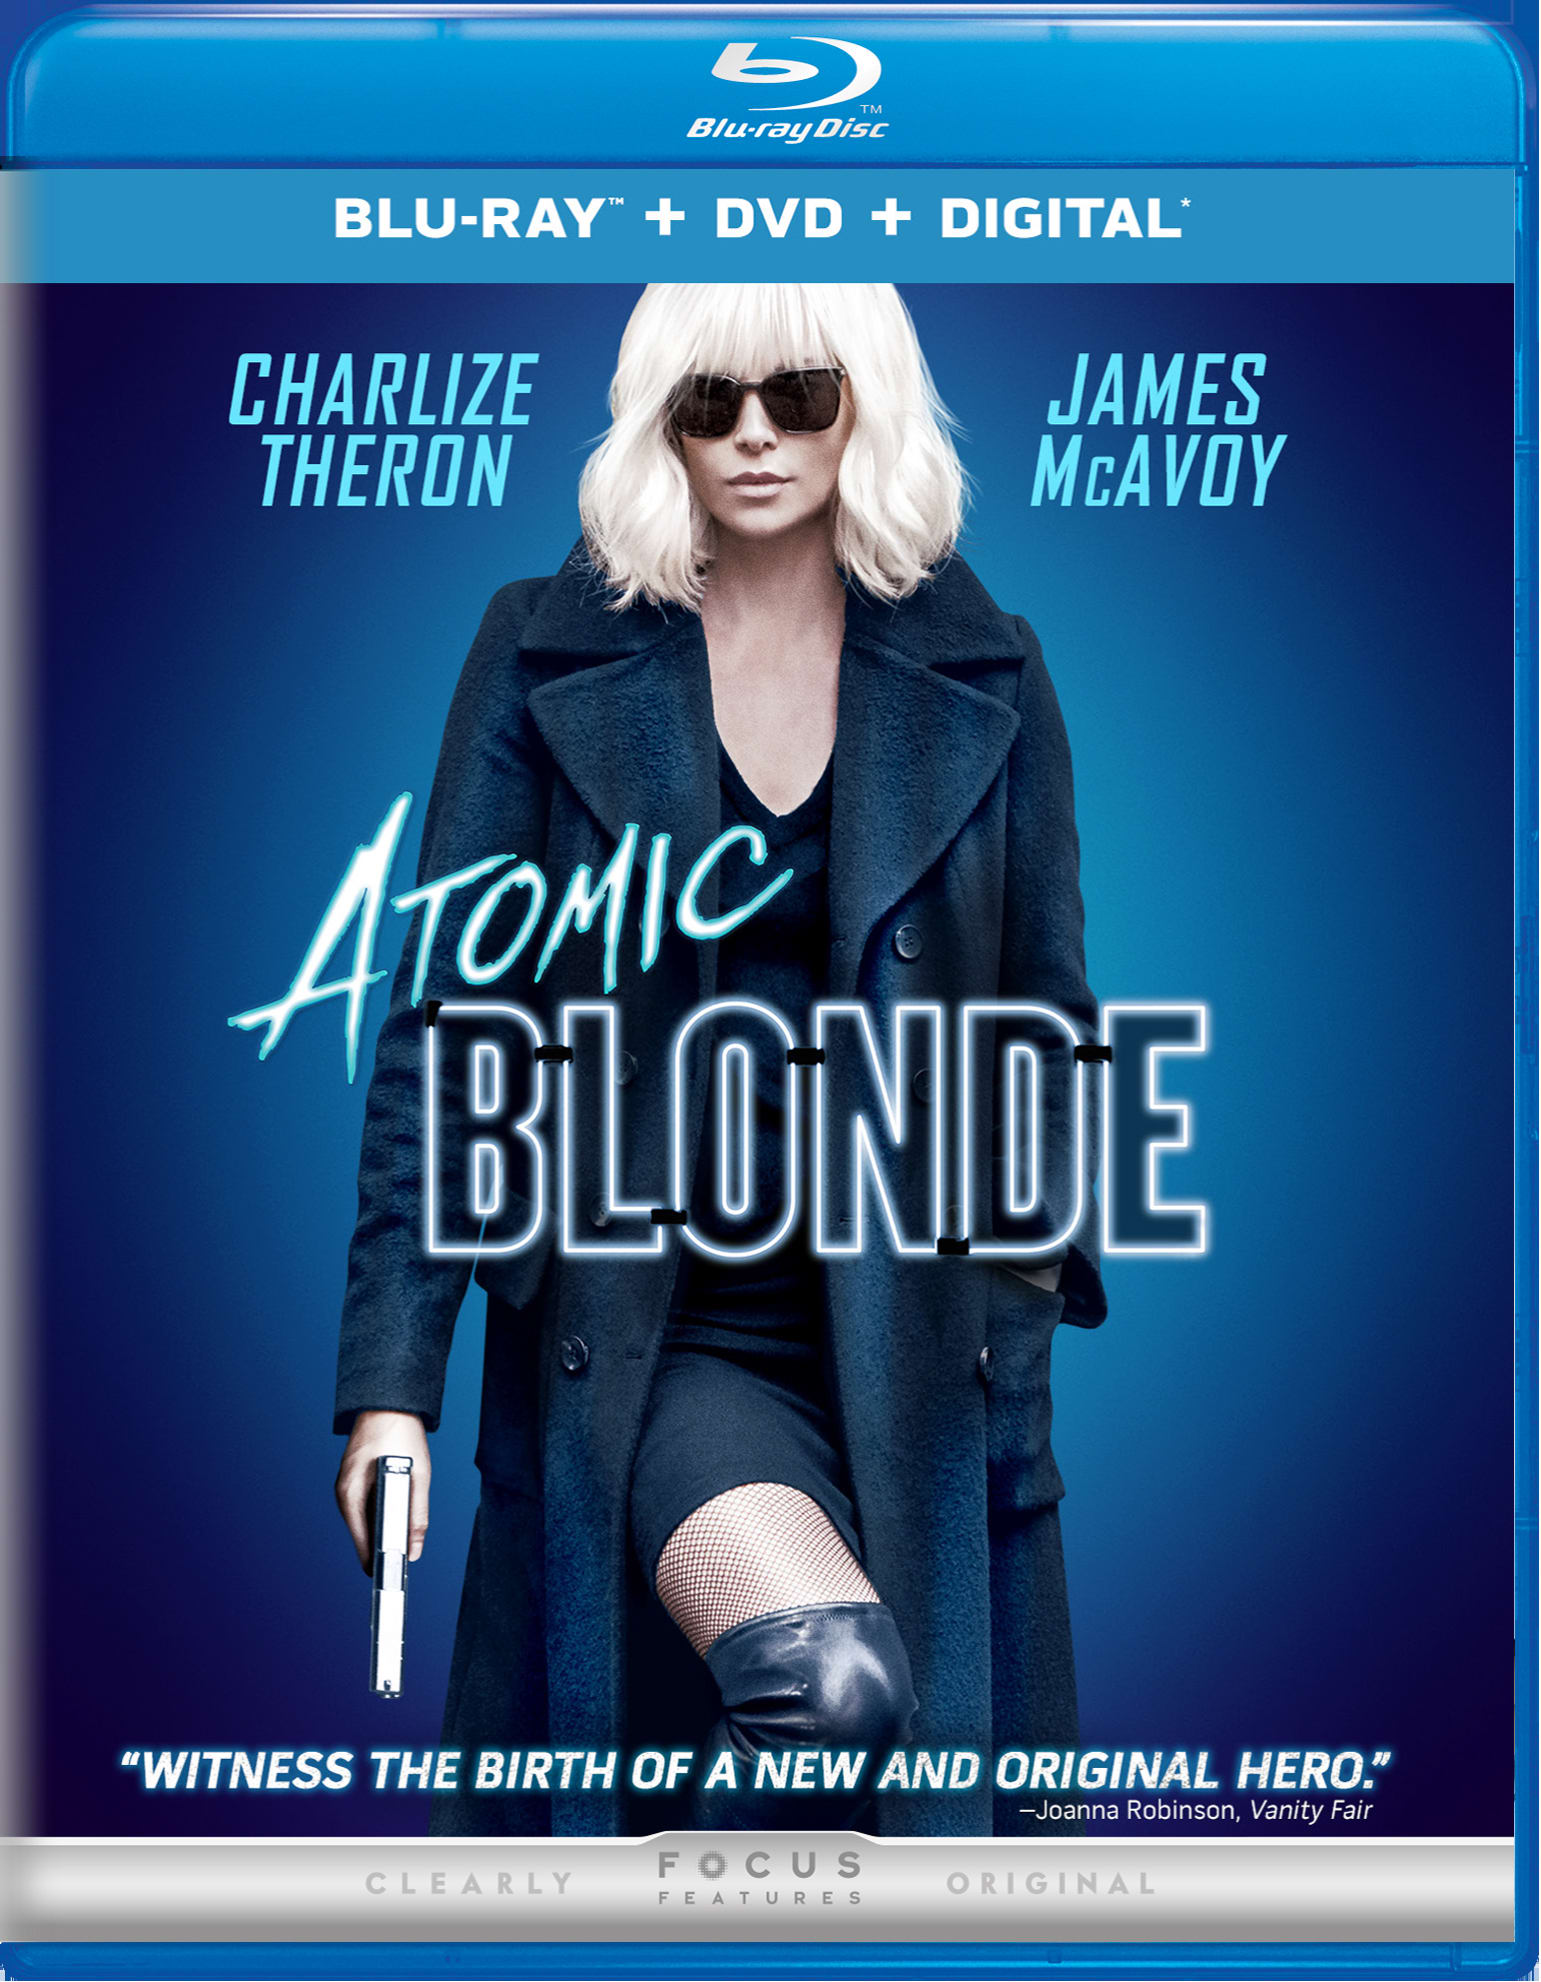 Atomic Blonde (DVD + Digital) [Blu-ray]